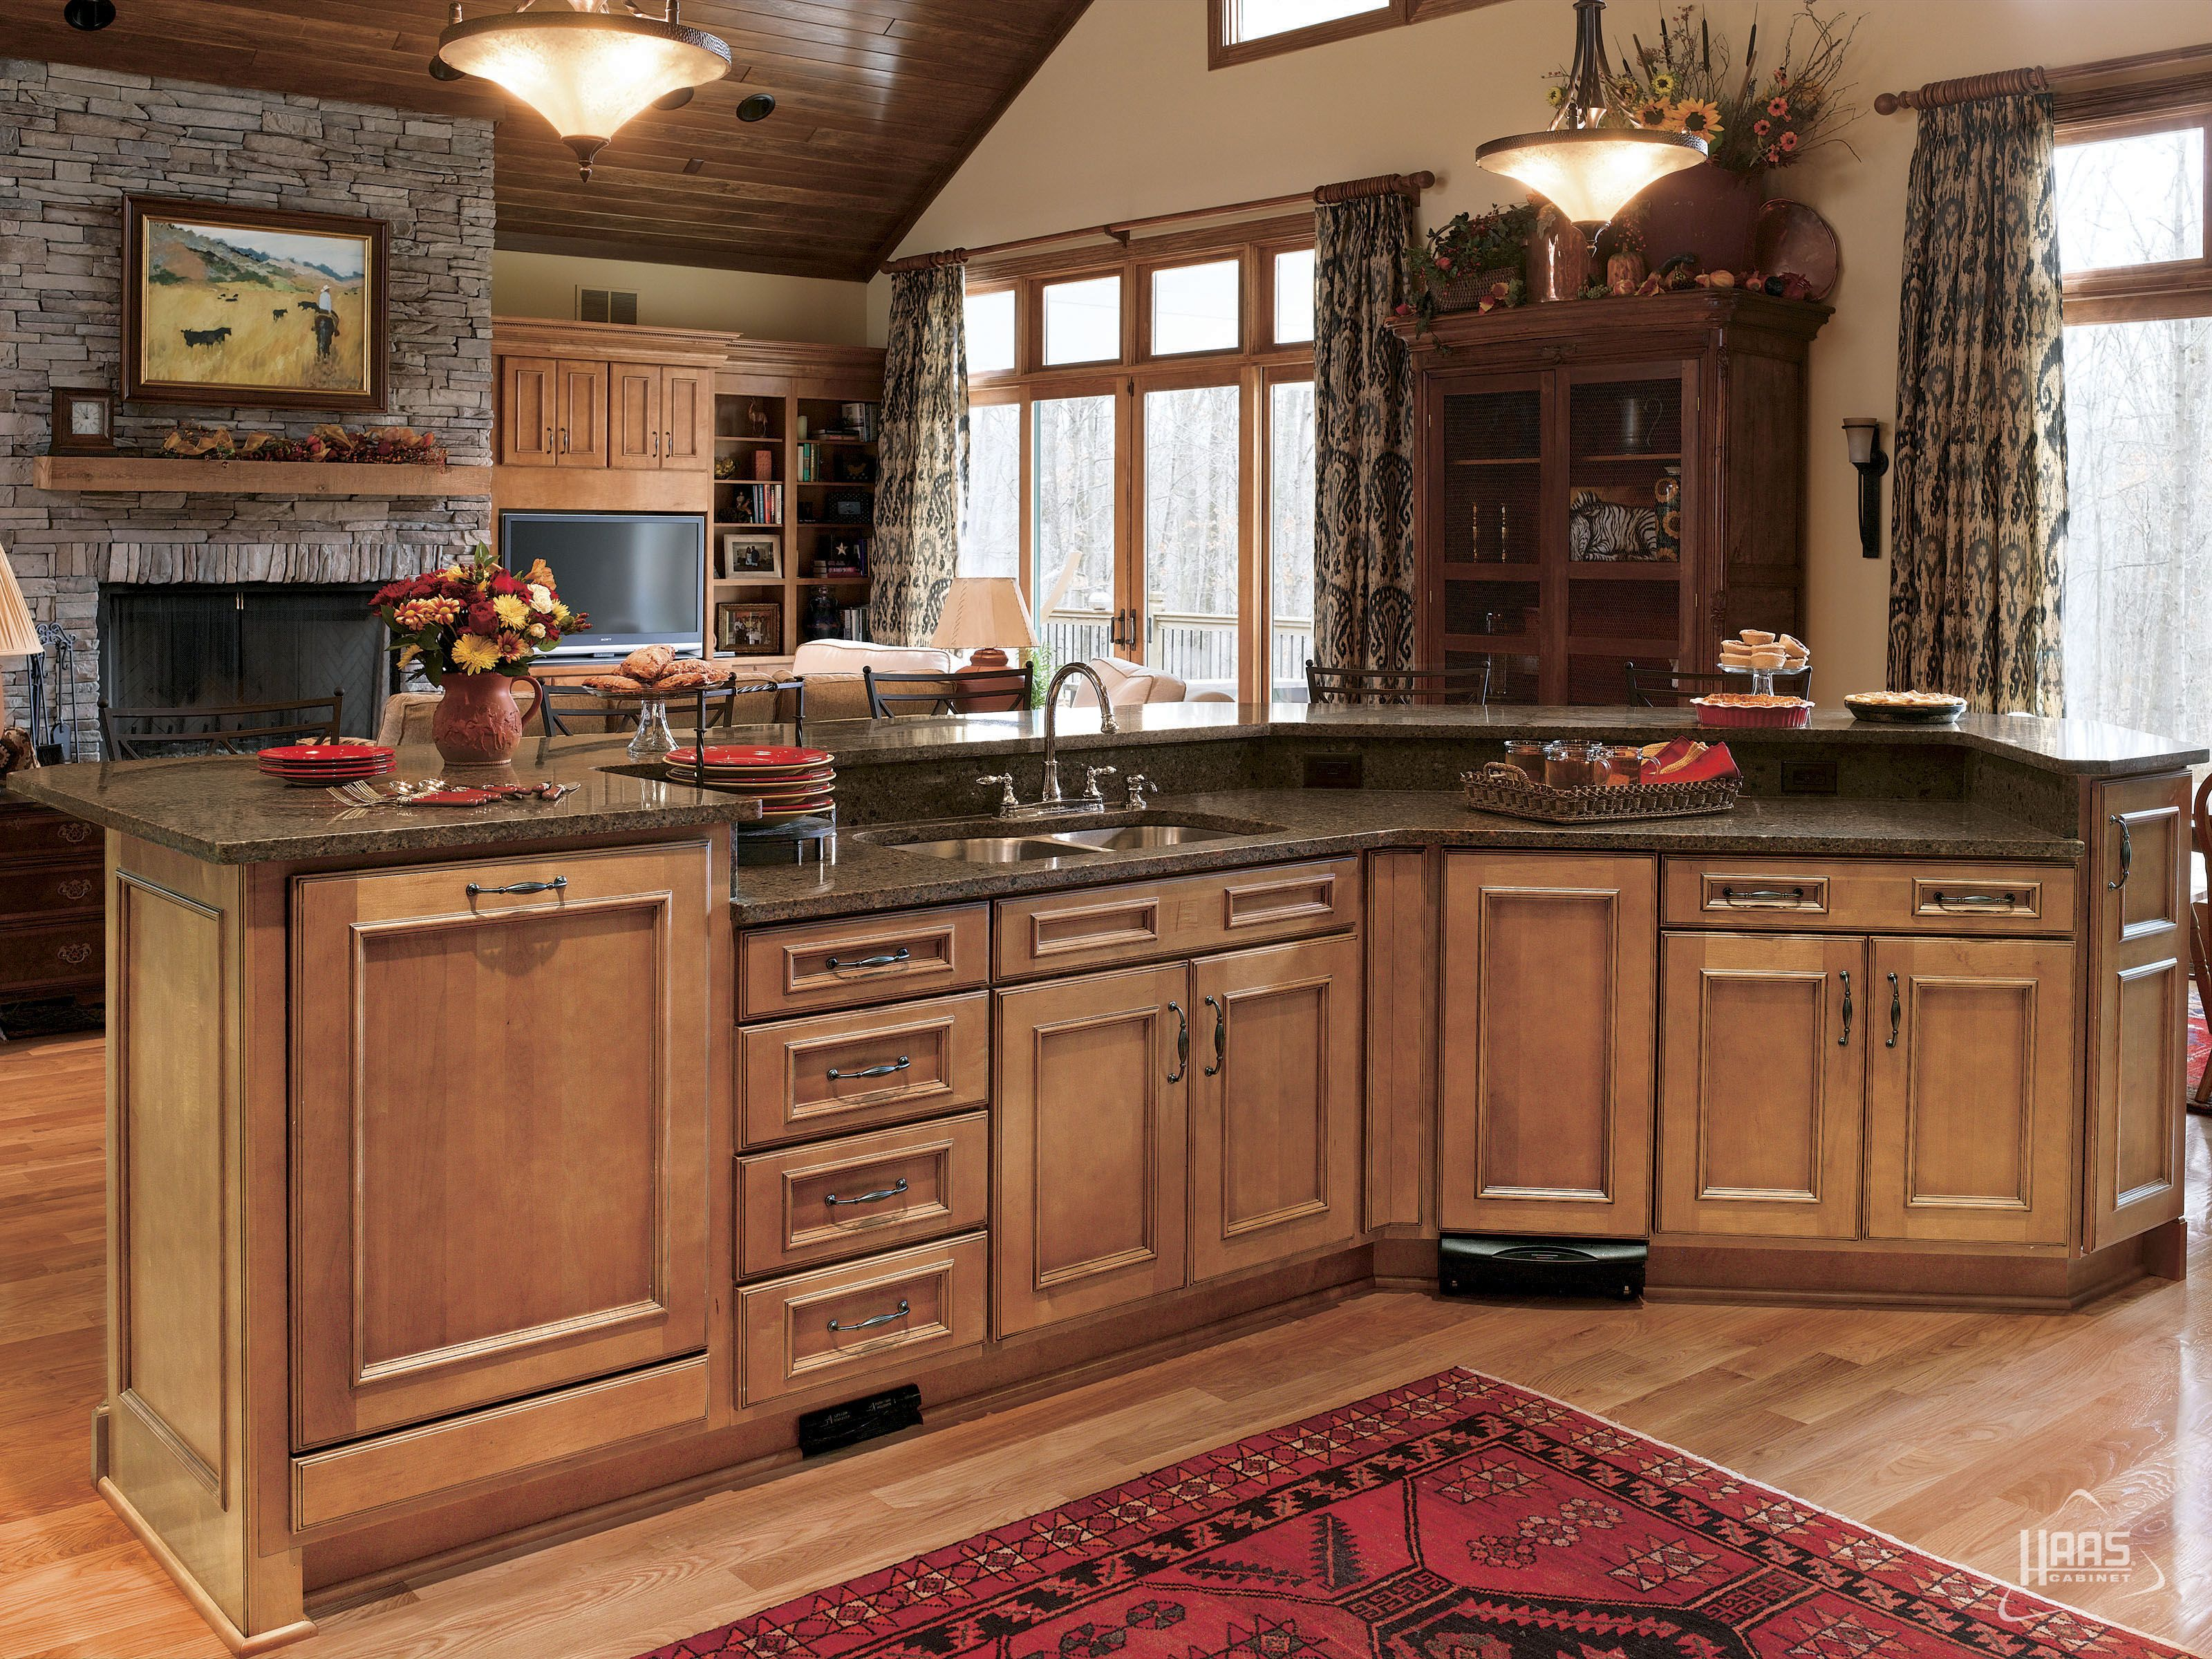 Door Style Hartford Wood Species Maple Finish Spice With Mocha Accents C Haas Cabinet Kitchen Remodel Glazed Kitchen Cabinets Cabinet